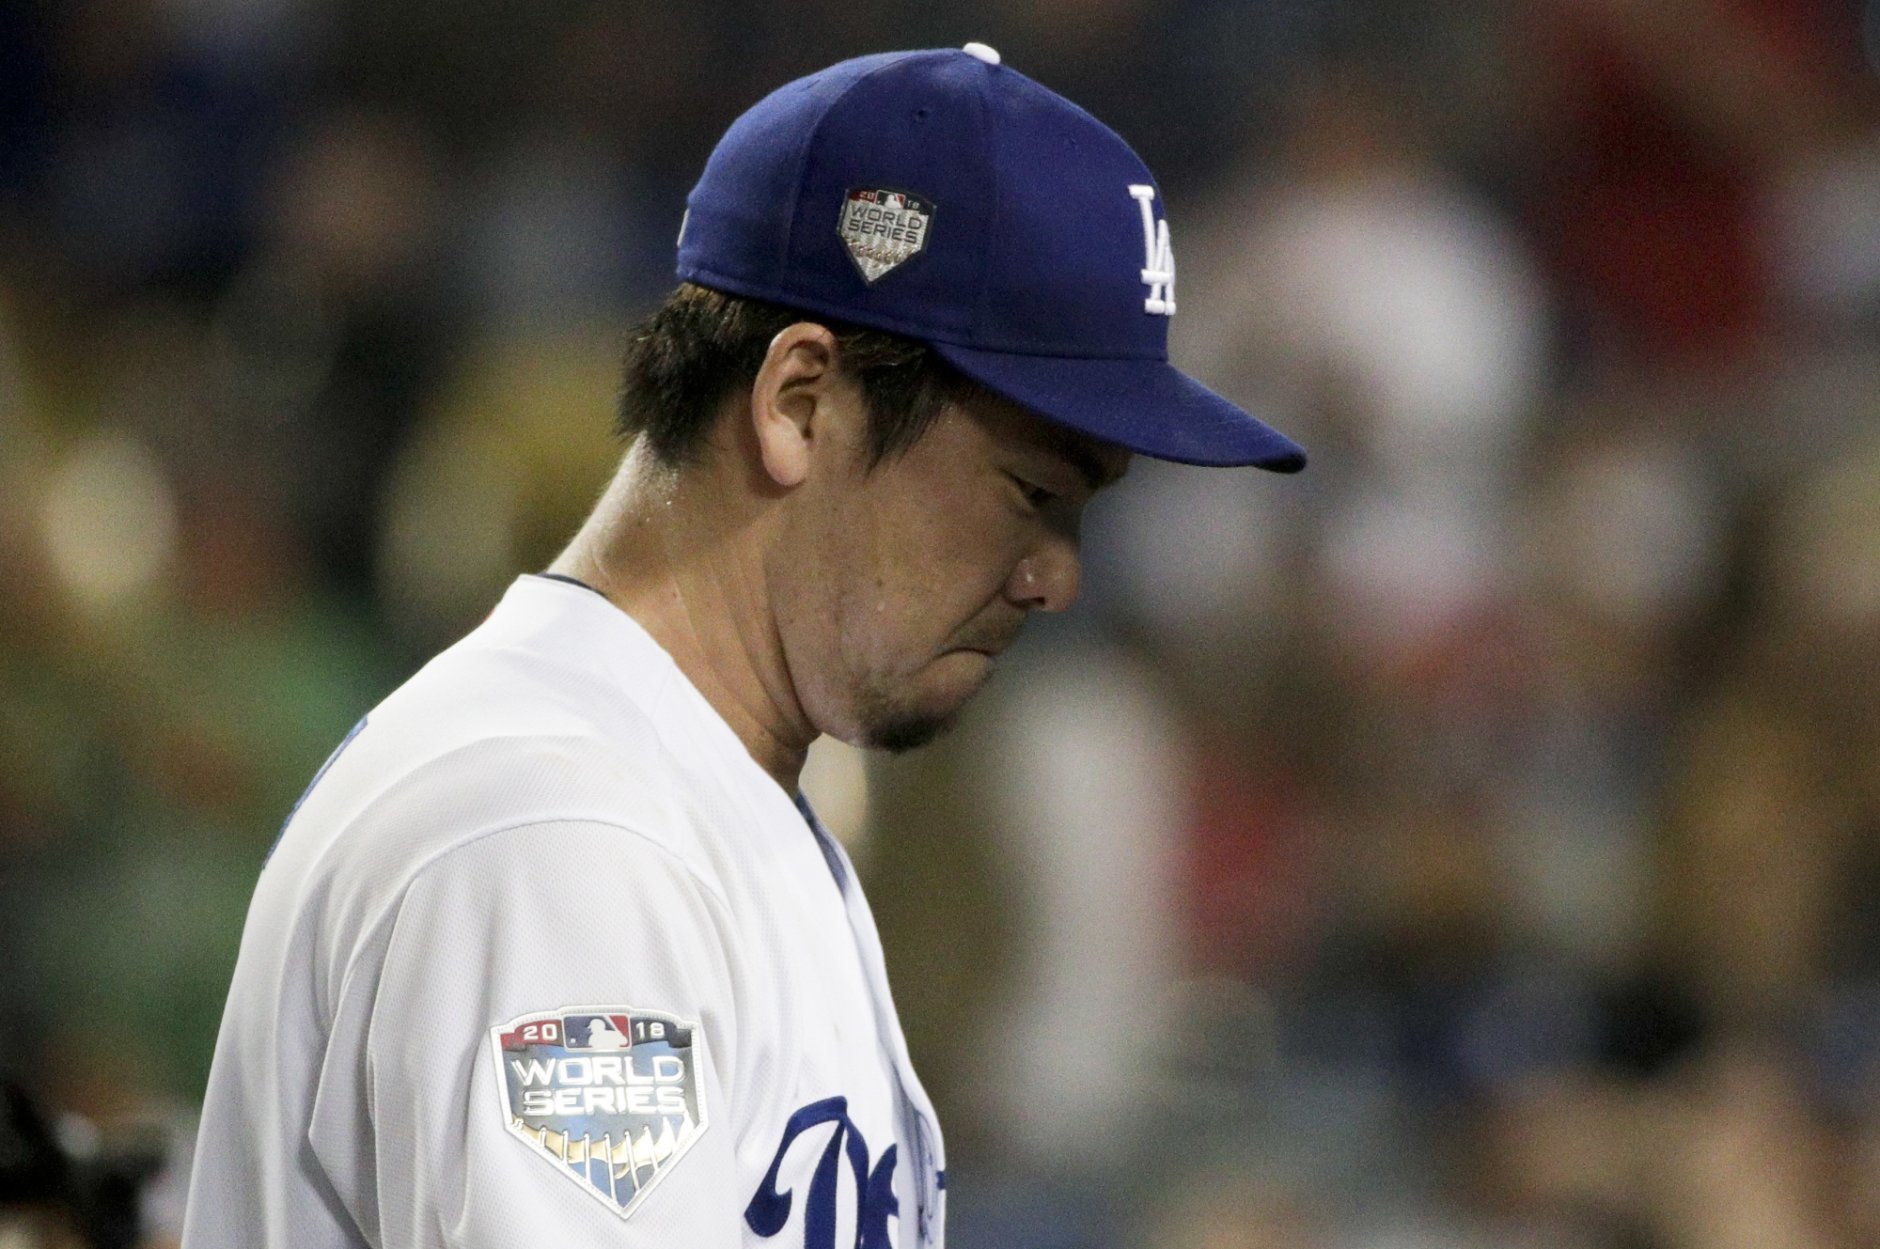 Los Angeles Dodgers pitcher Kenta Maeda leaves the field at the end of the top of the eighth inning against the Boston Red Sox in Game 4 of the World Series baseball game on Saturday, Oct. 27, 2018, in Los Angeles. (AP Photo/Jae C. Hong)